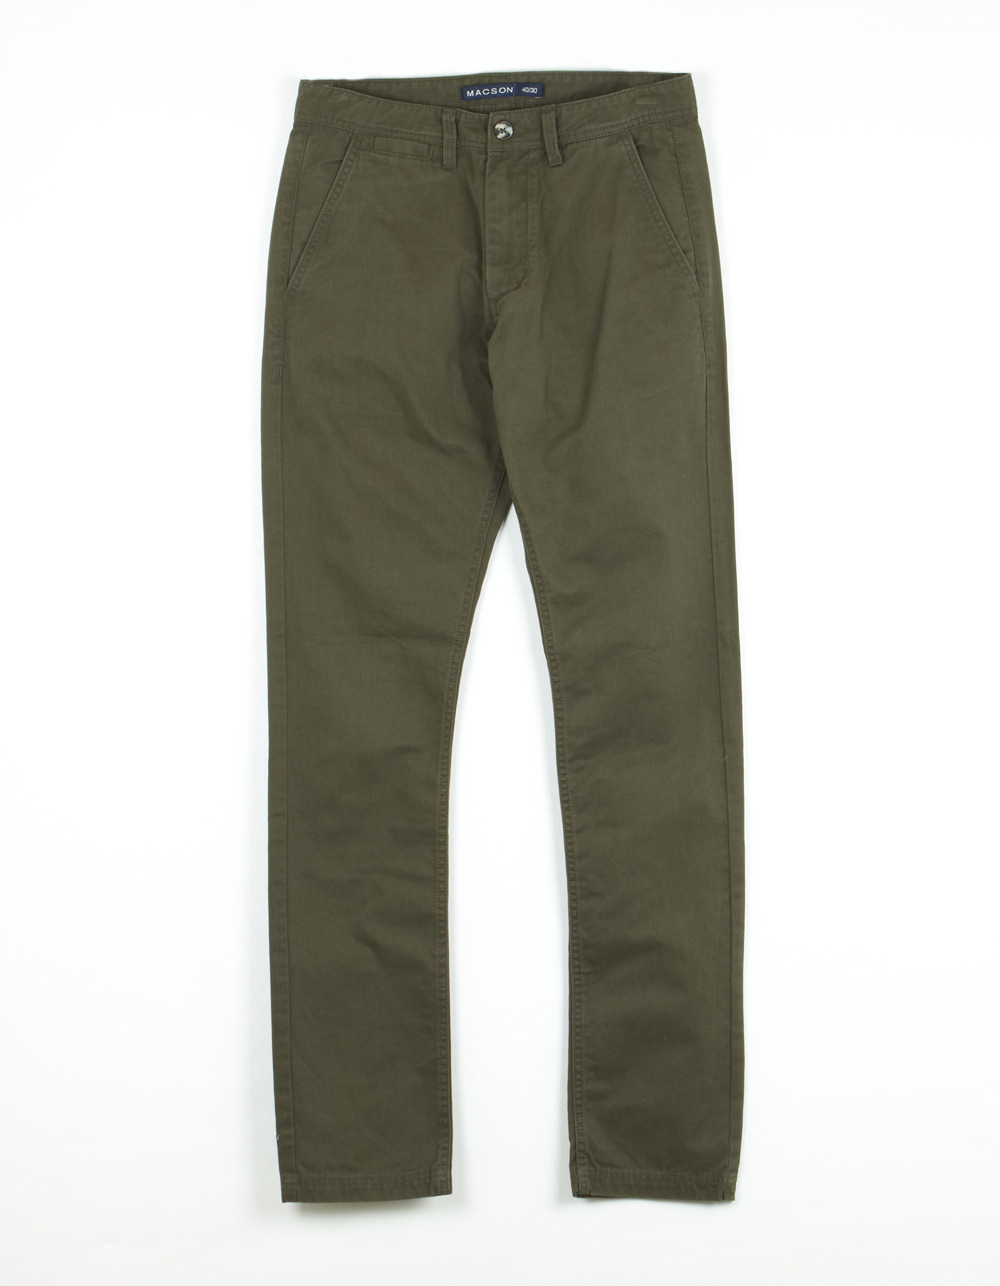 Kaki blue chinos trousers - Backside